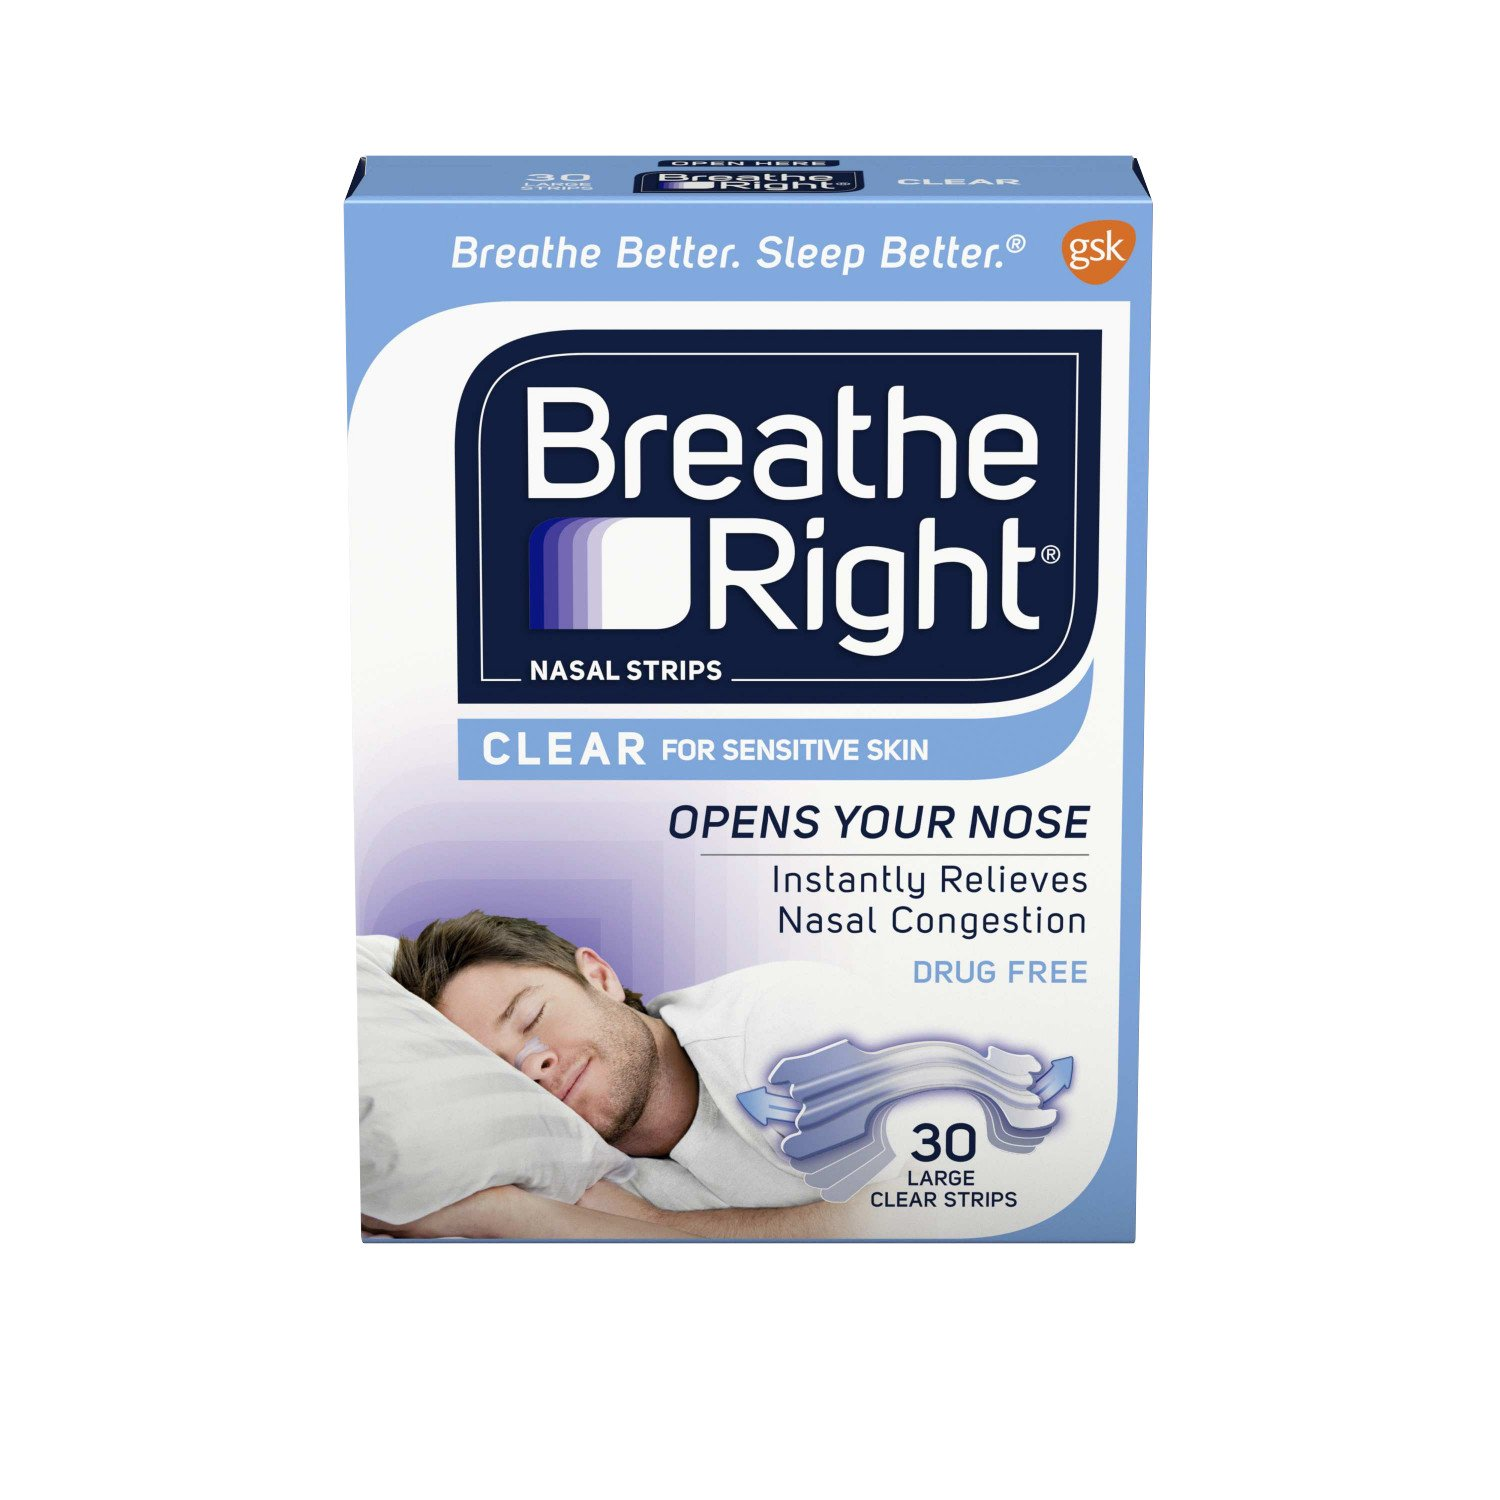 Breathe Right Nasal Strips to Stop Snoring, Drug-Free, Large, Clear for Sensitive Skin, 30 count (Pack of 2)